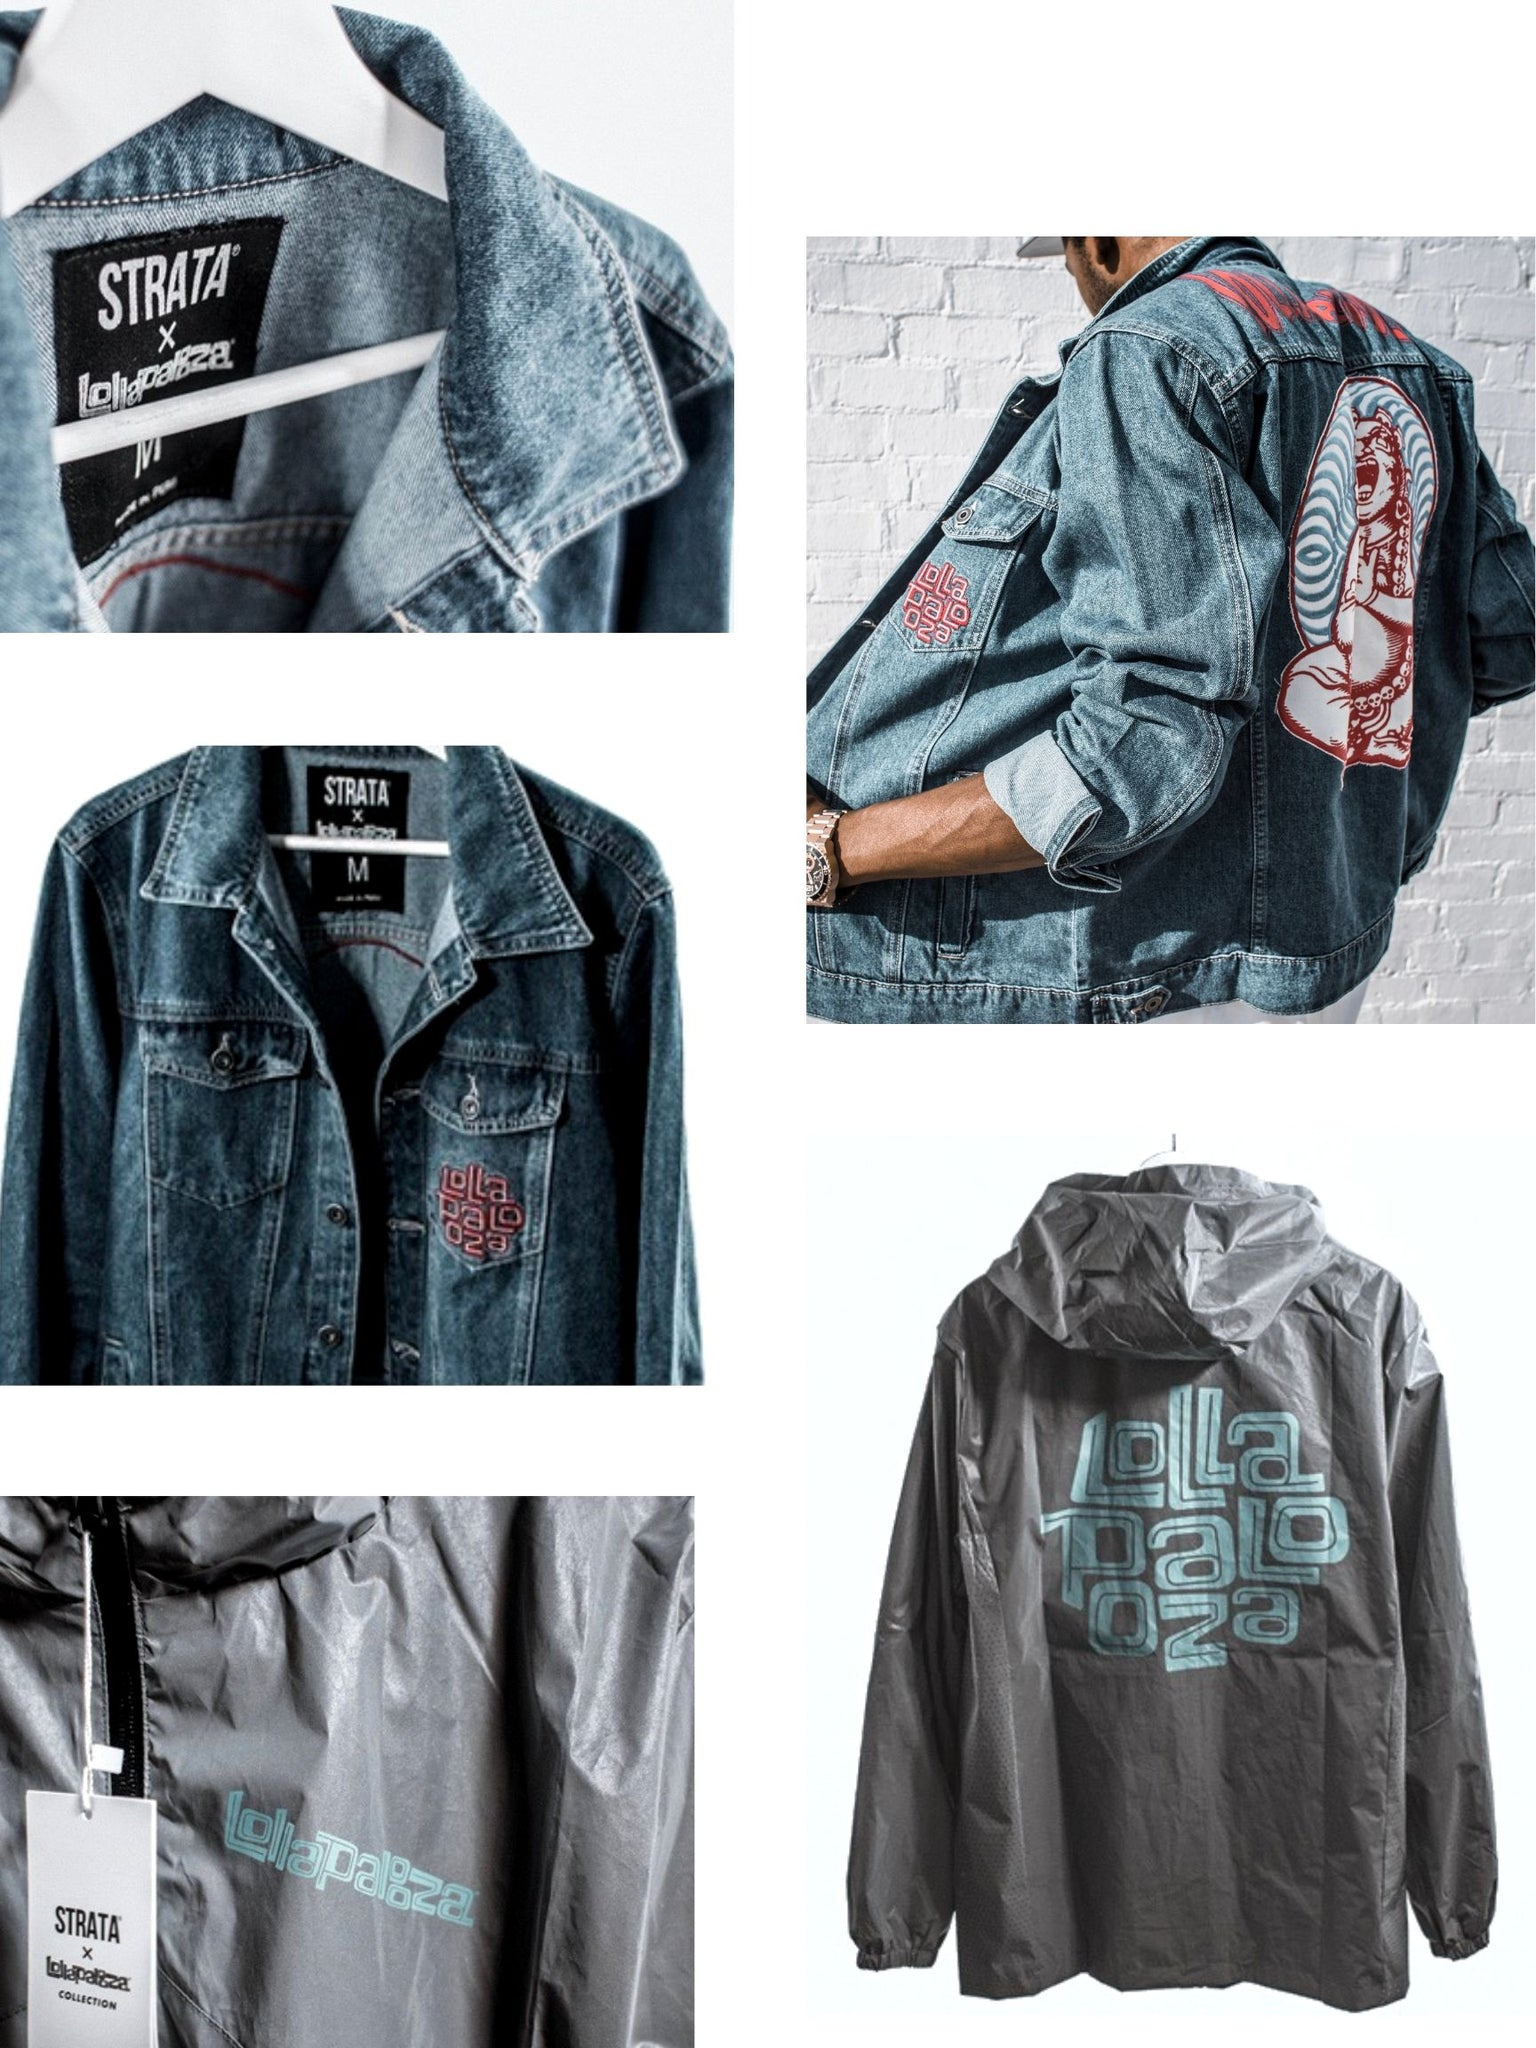 Lollapalooza x STRATA denim jacket